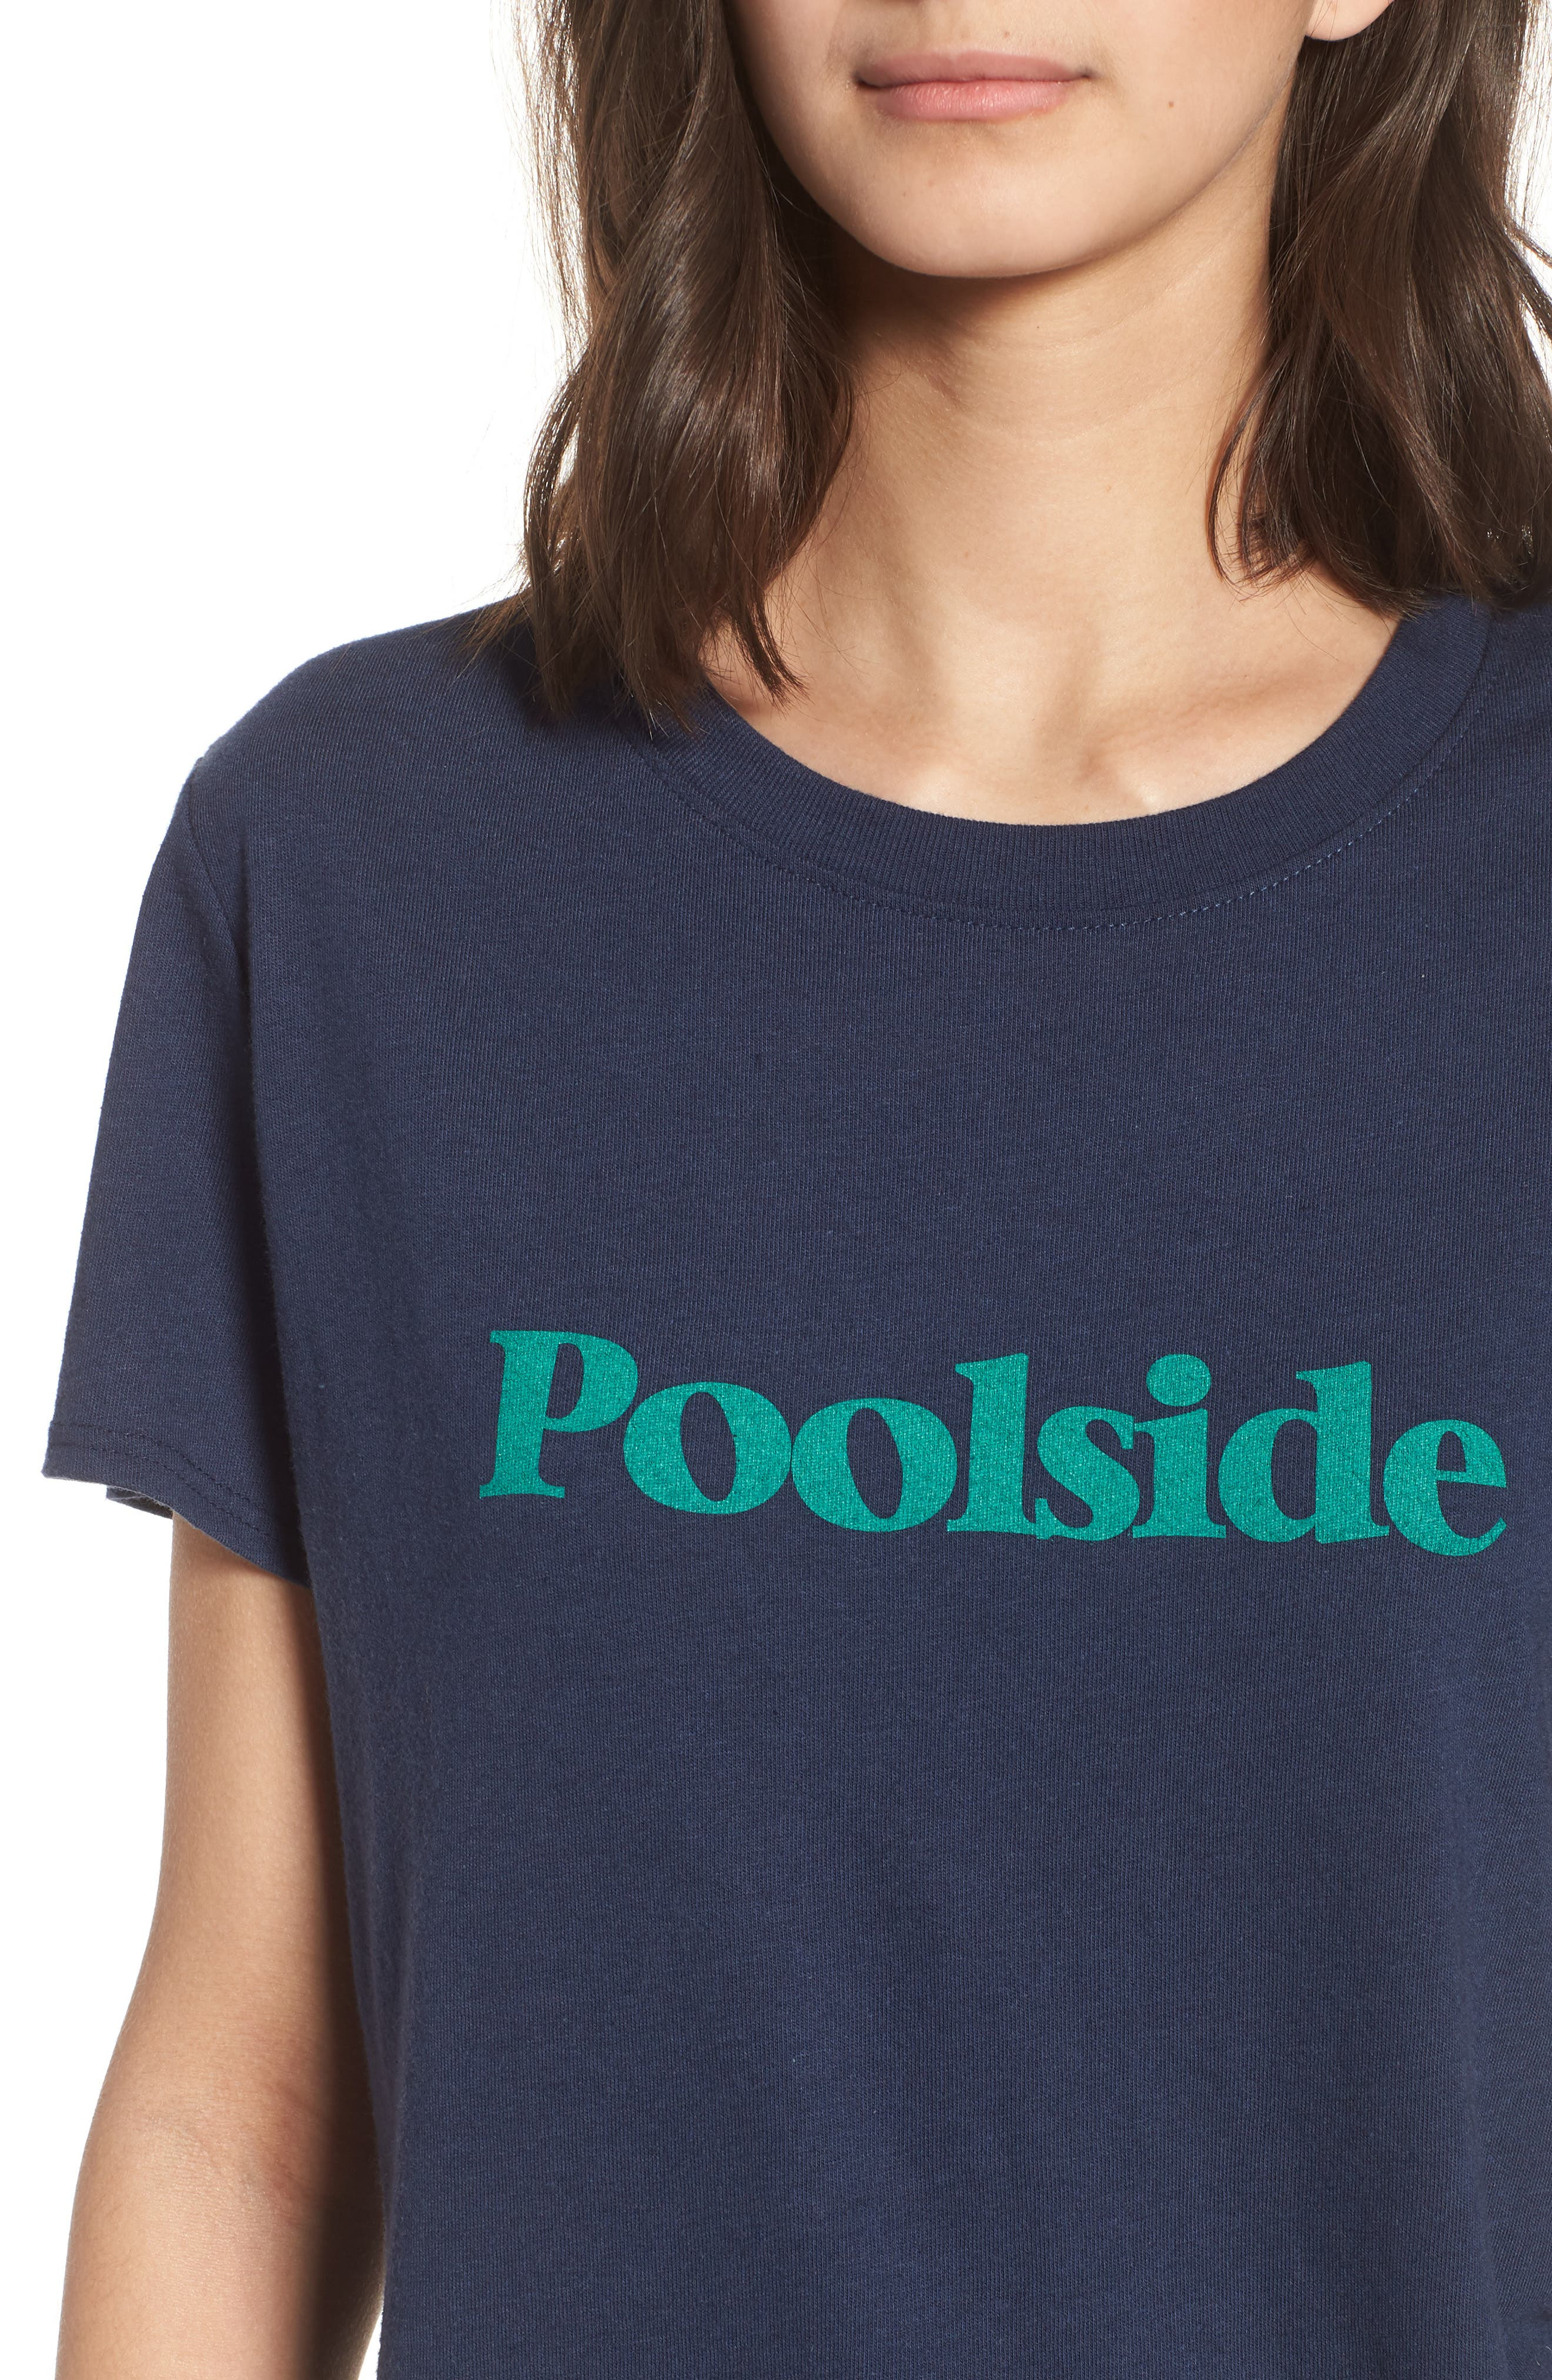 Poolside Graphic Tee,                             Alternate thumbnail 4, color,                             Navy